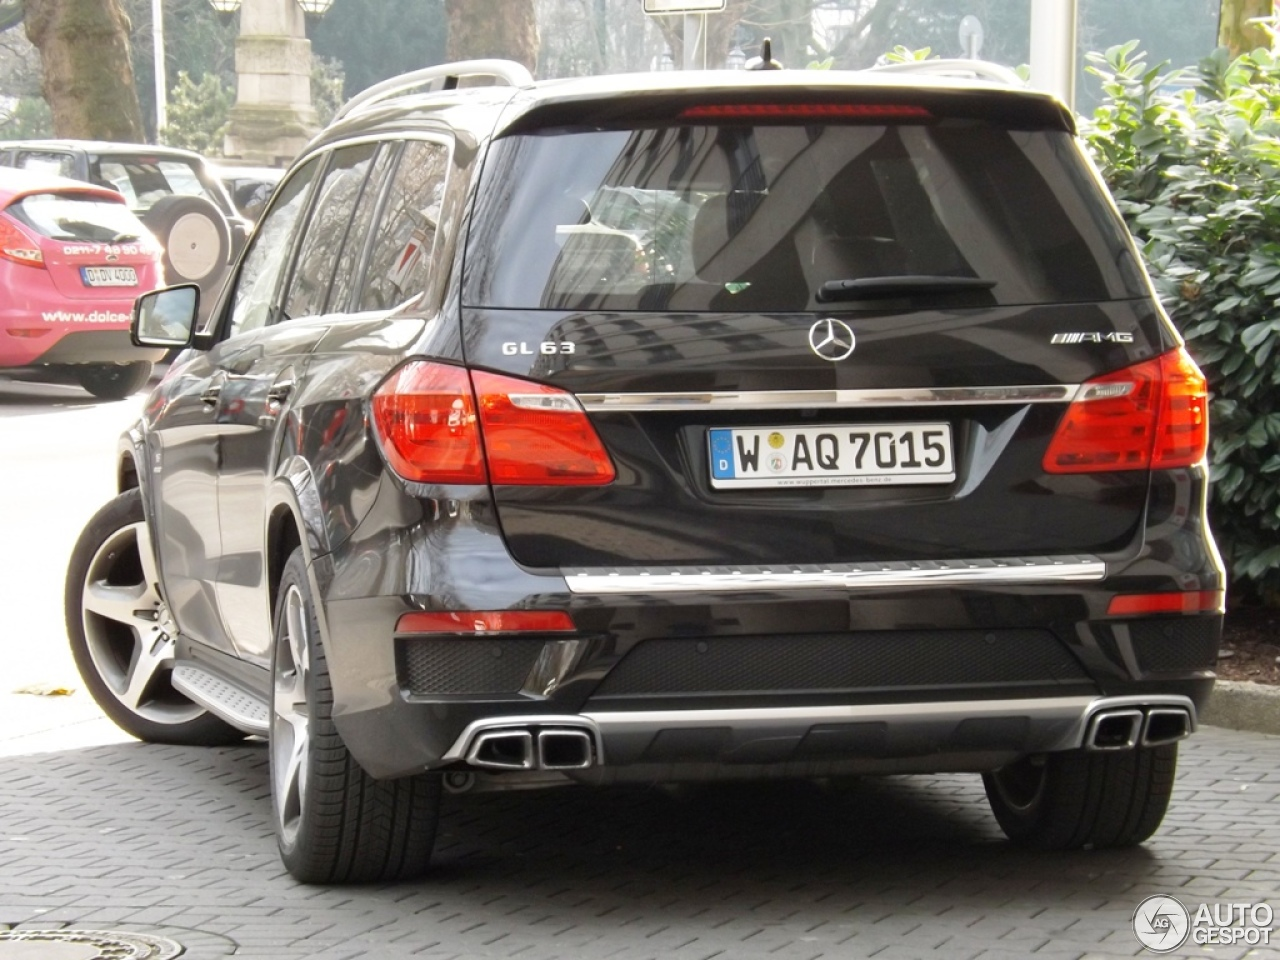 Mercedes benz gl 63 amg x166 14 december 2012 autogespot for Mercedes benz gl amg for sale